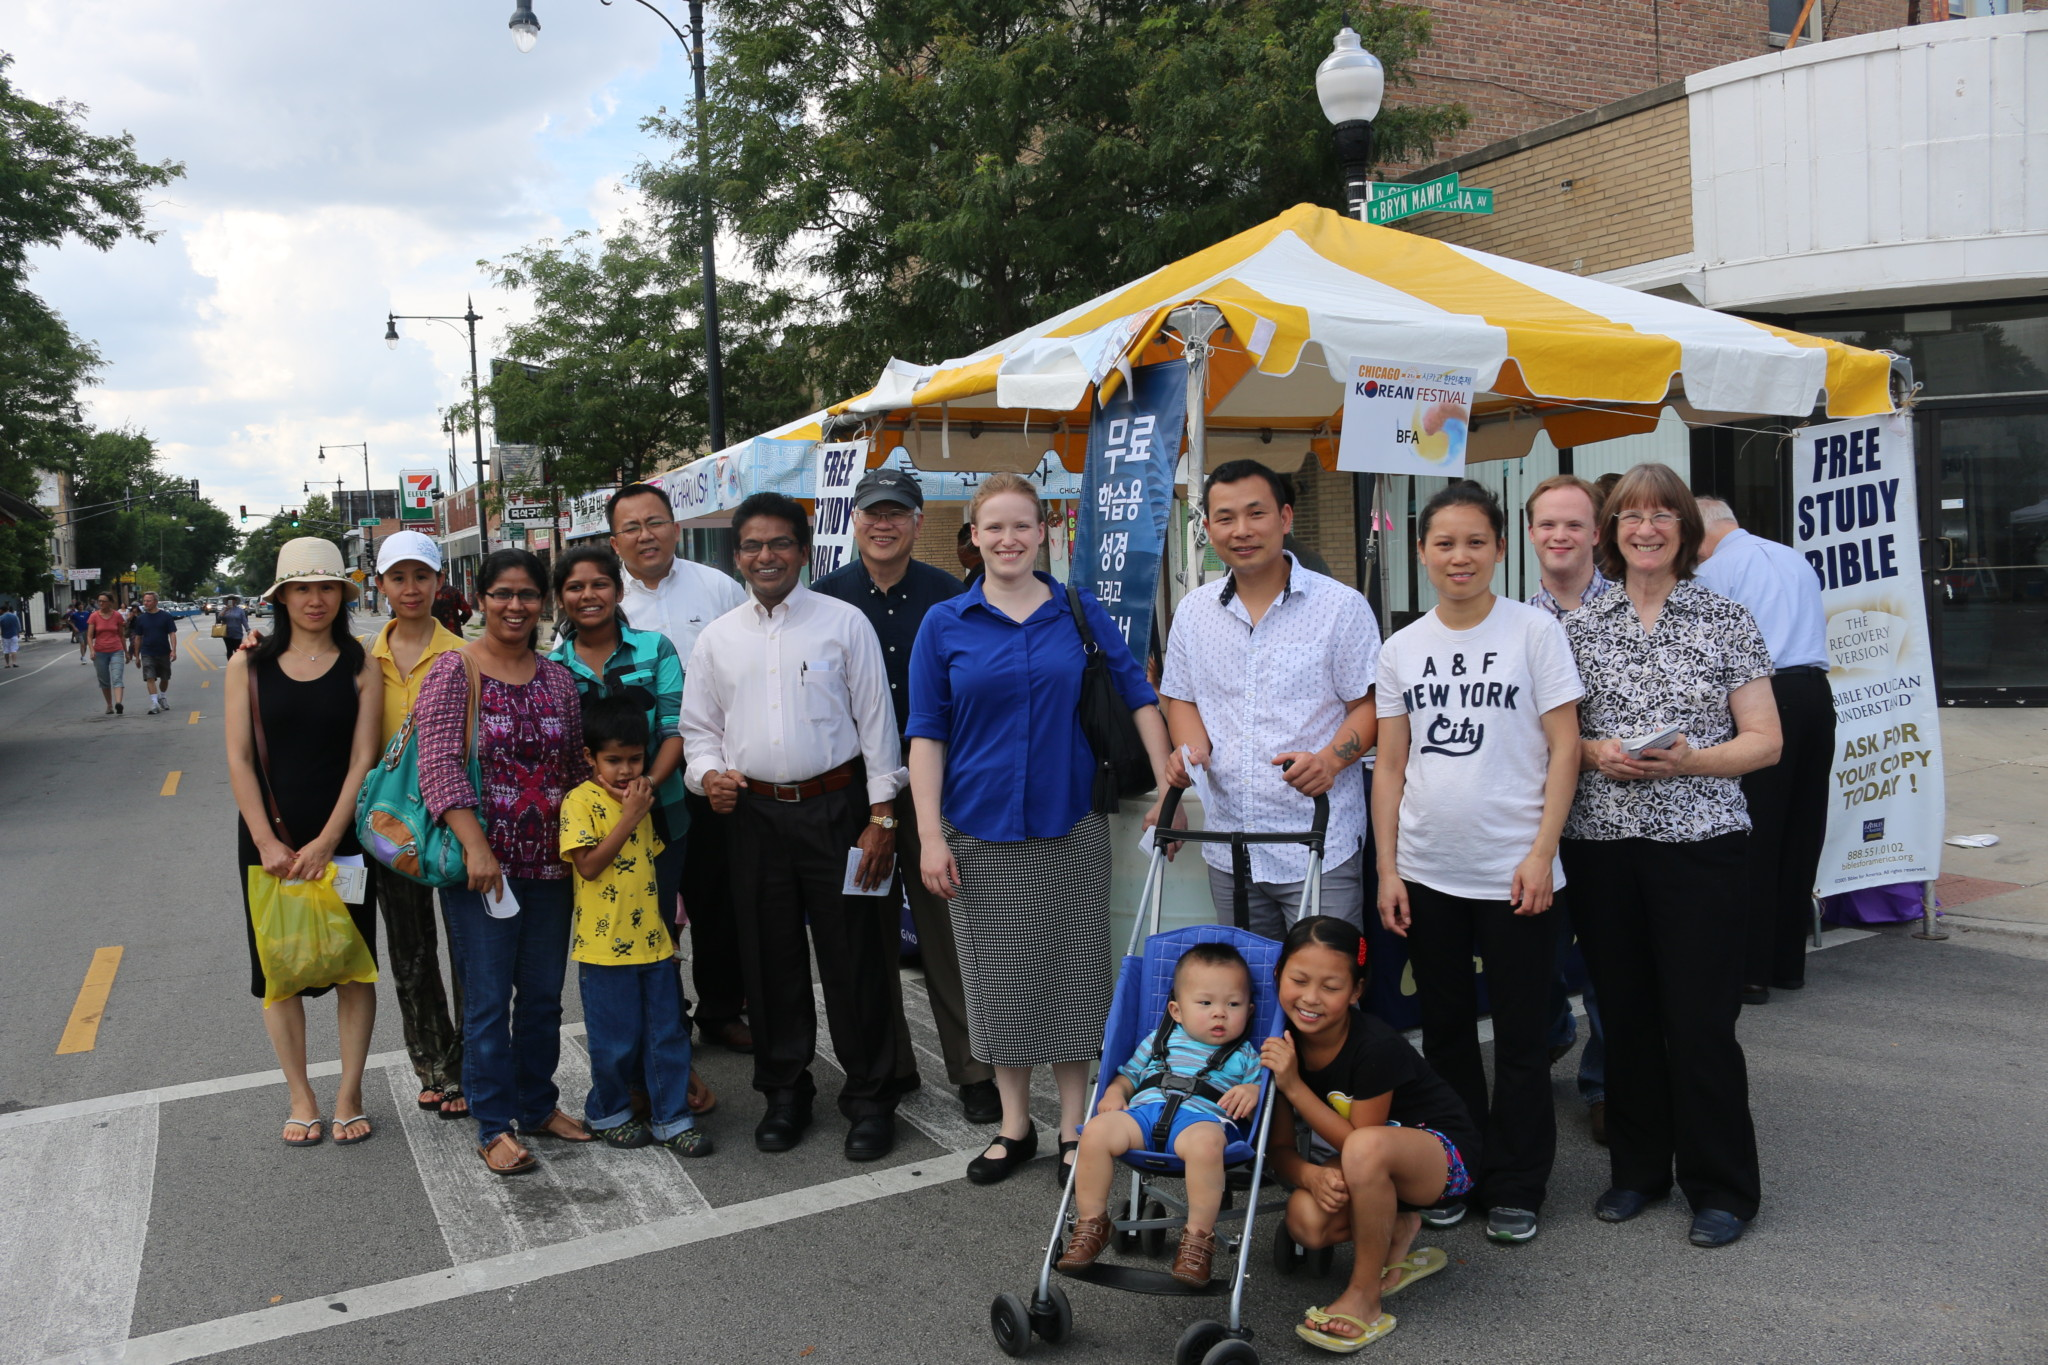 Outreach at Chicago Street Festiva